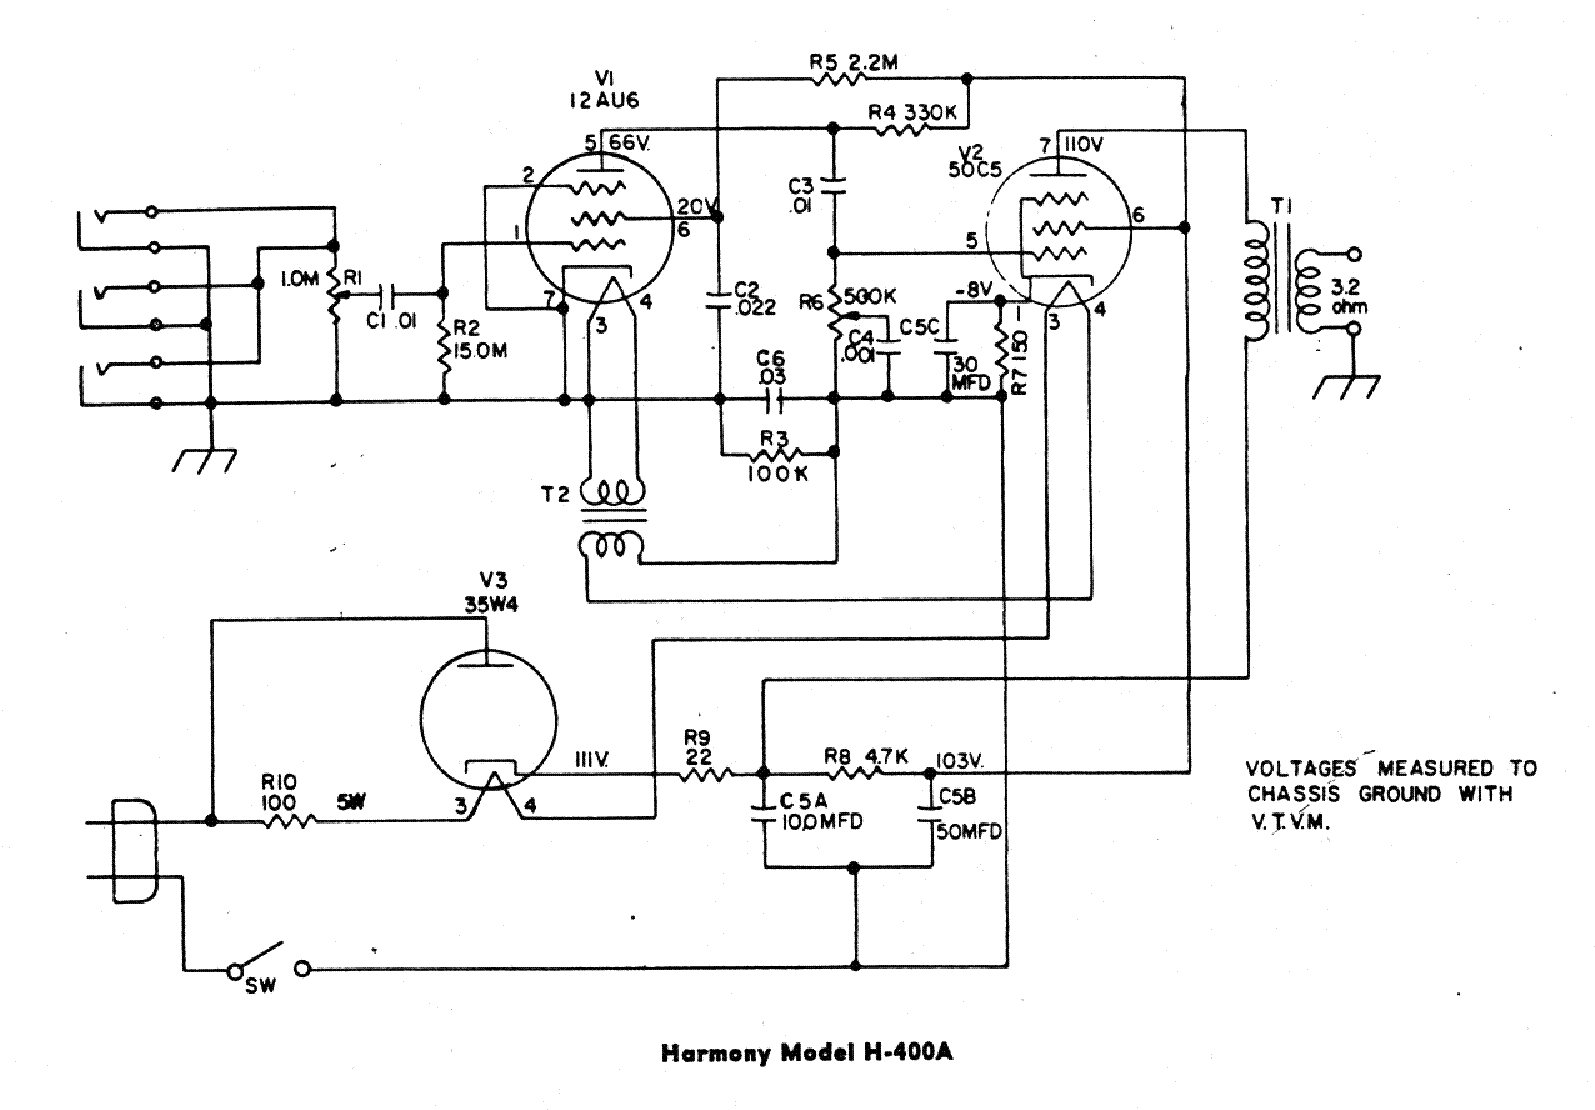 Harmony H306a Schematic Wiring Amp - Auto Electrical Wiring ... on electronic circuit diagrams, led circuit diagrams, switch diagrams, motor diagrams, honda motorcycle repair diagrams, troubleshooting diagrams, transformer diagrams, gmc fuse box diagrams, internet of things diagrams, friendship bracelet diagrams, electrical diagrams, engine diagrams, series and parallel circuits diagrams, pinout diagrams, lighting diagrams, sincgars radio configurations diagrams, hvac diagrams, battery diagrams, smart car diagrams,